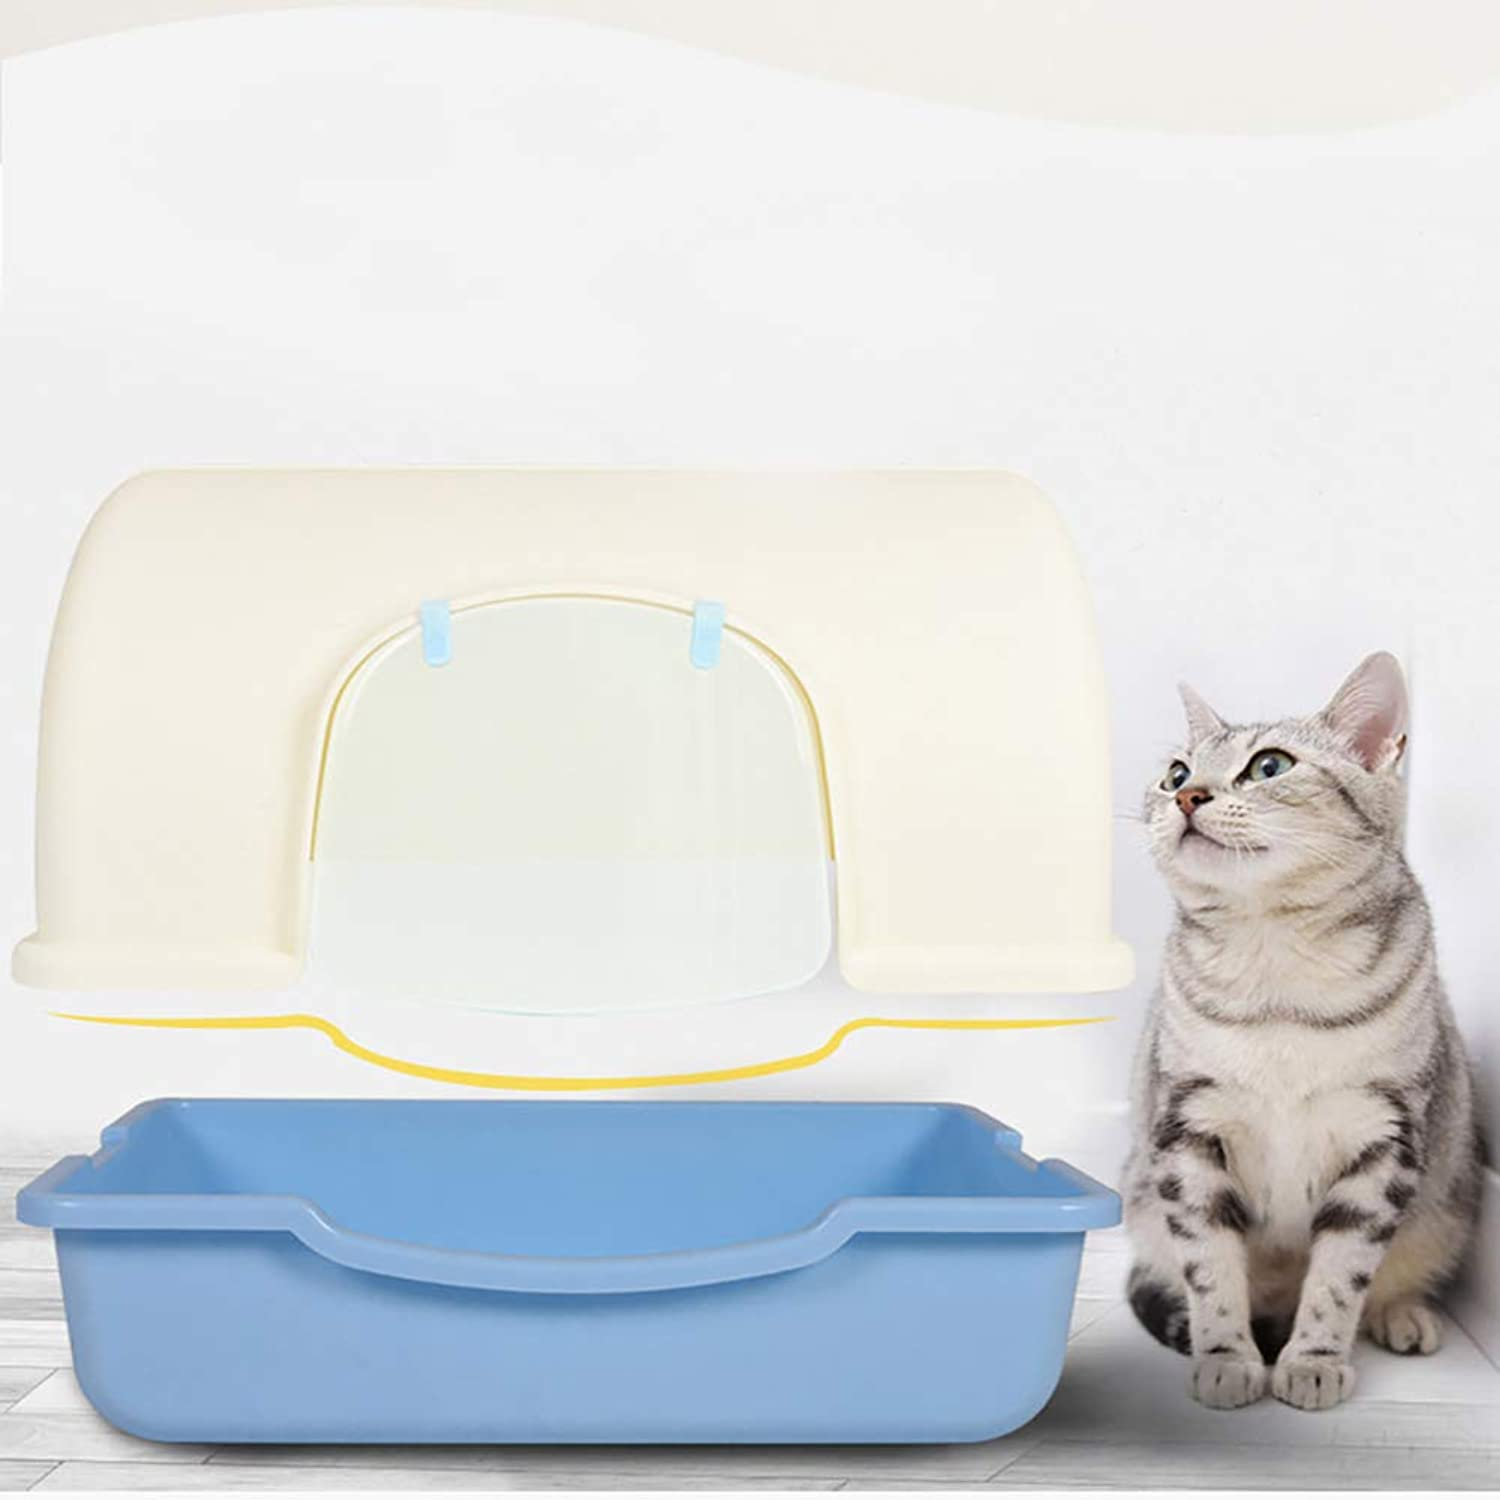 JYY Hooded Cat Litter Box, Easy Clean Fully Enclosed Cat Toilet, Easy To Clean Toilet For Your Cat